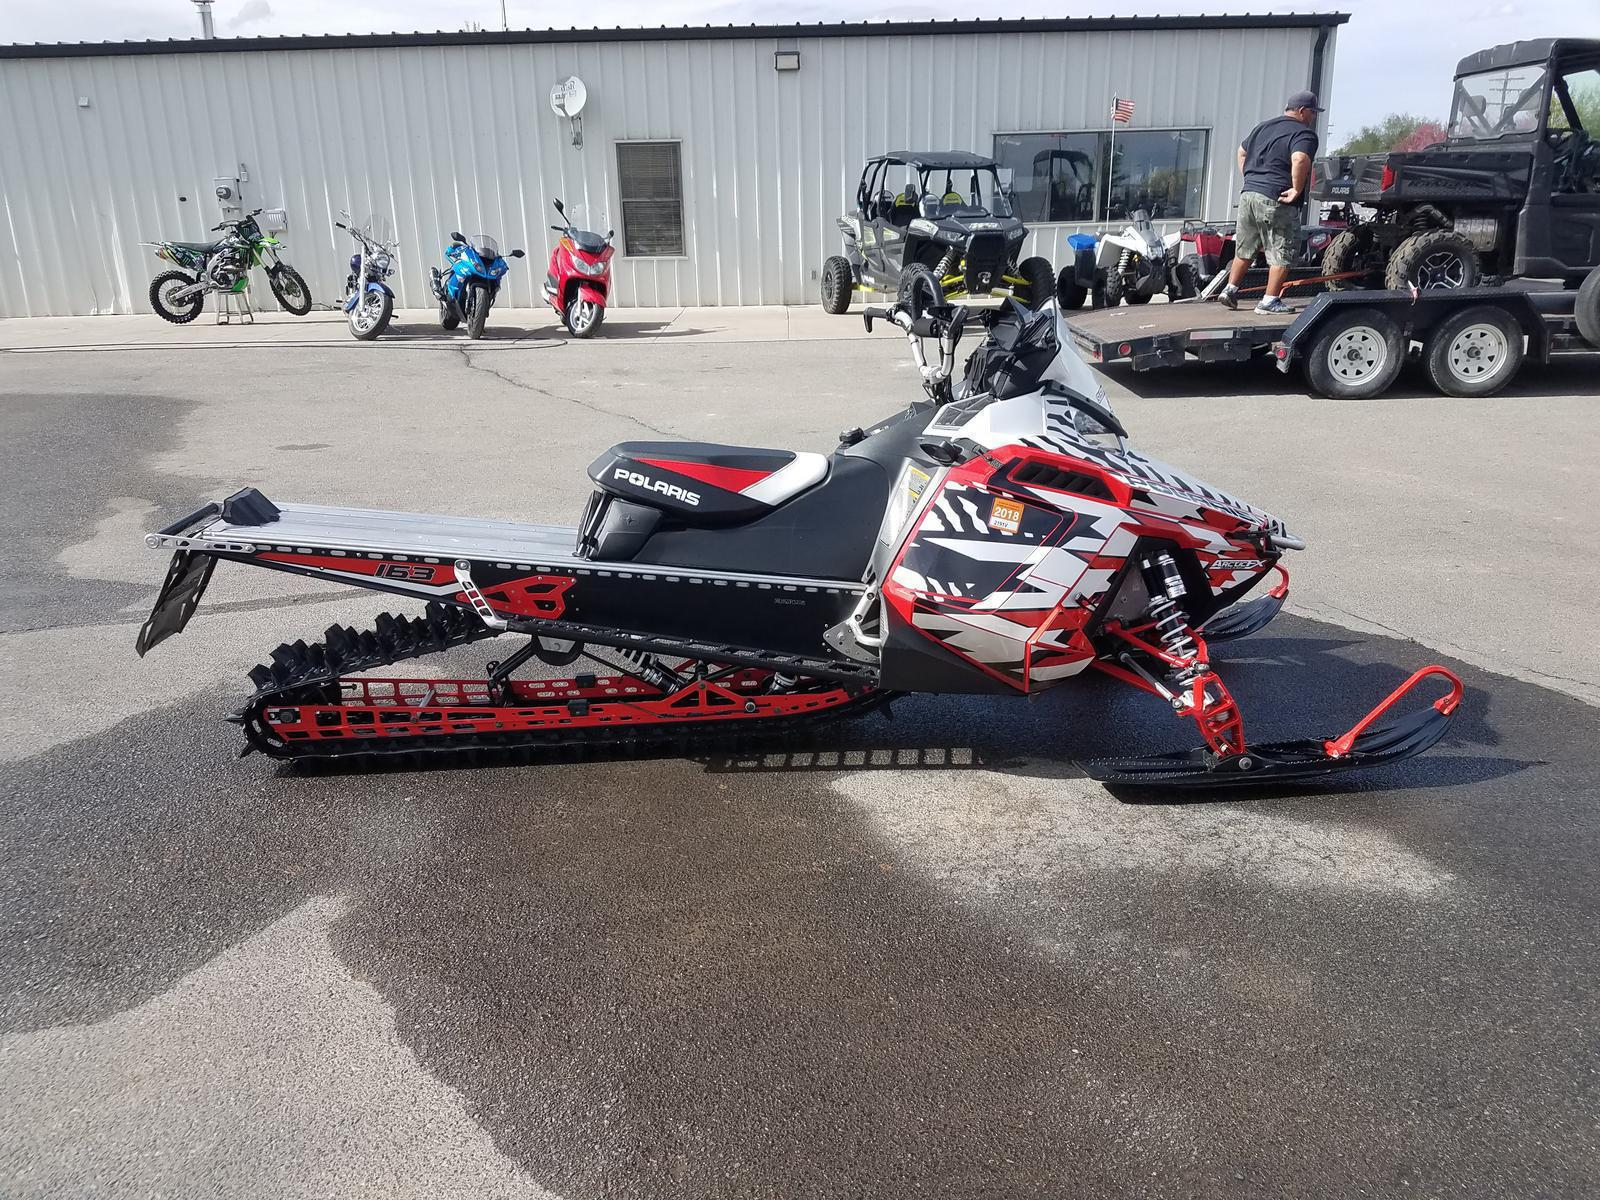 Inventory from Polaris Industries and Honda Mark's Outdoor